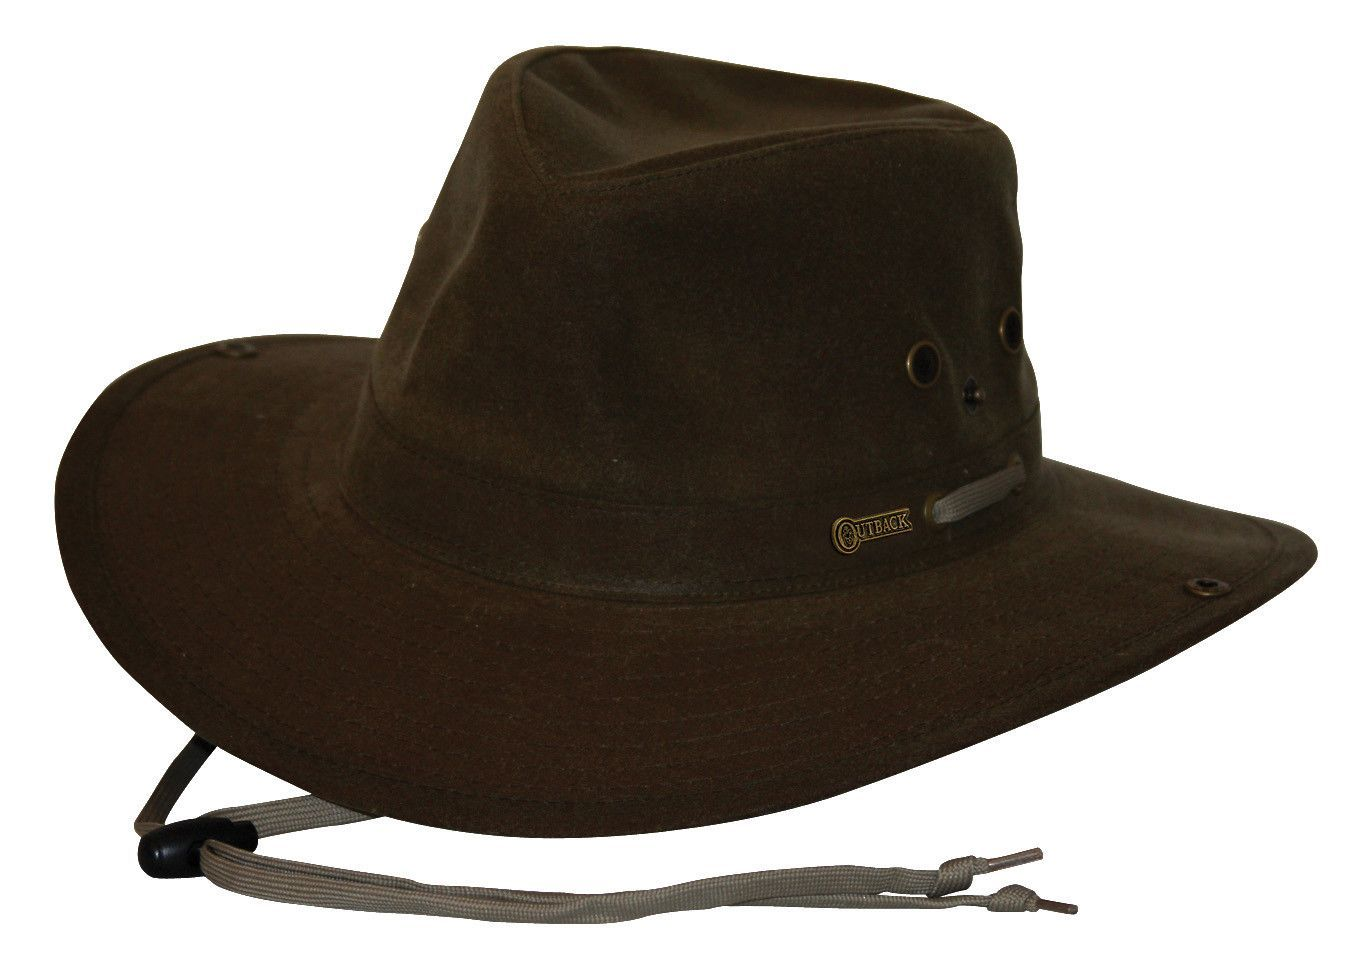 Outback Trading Co. Oilskin River Guide Mens Hat Brown 100% Cotton ... 356ff8ef487